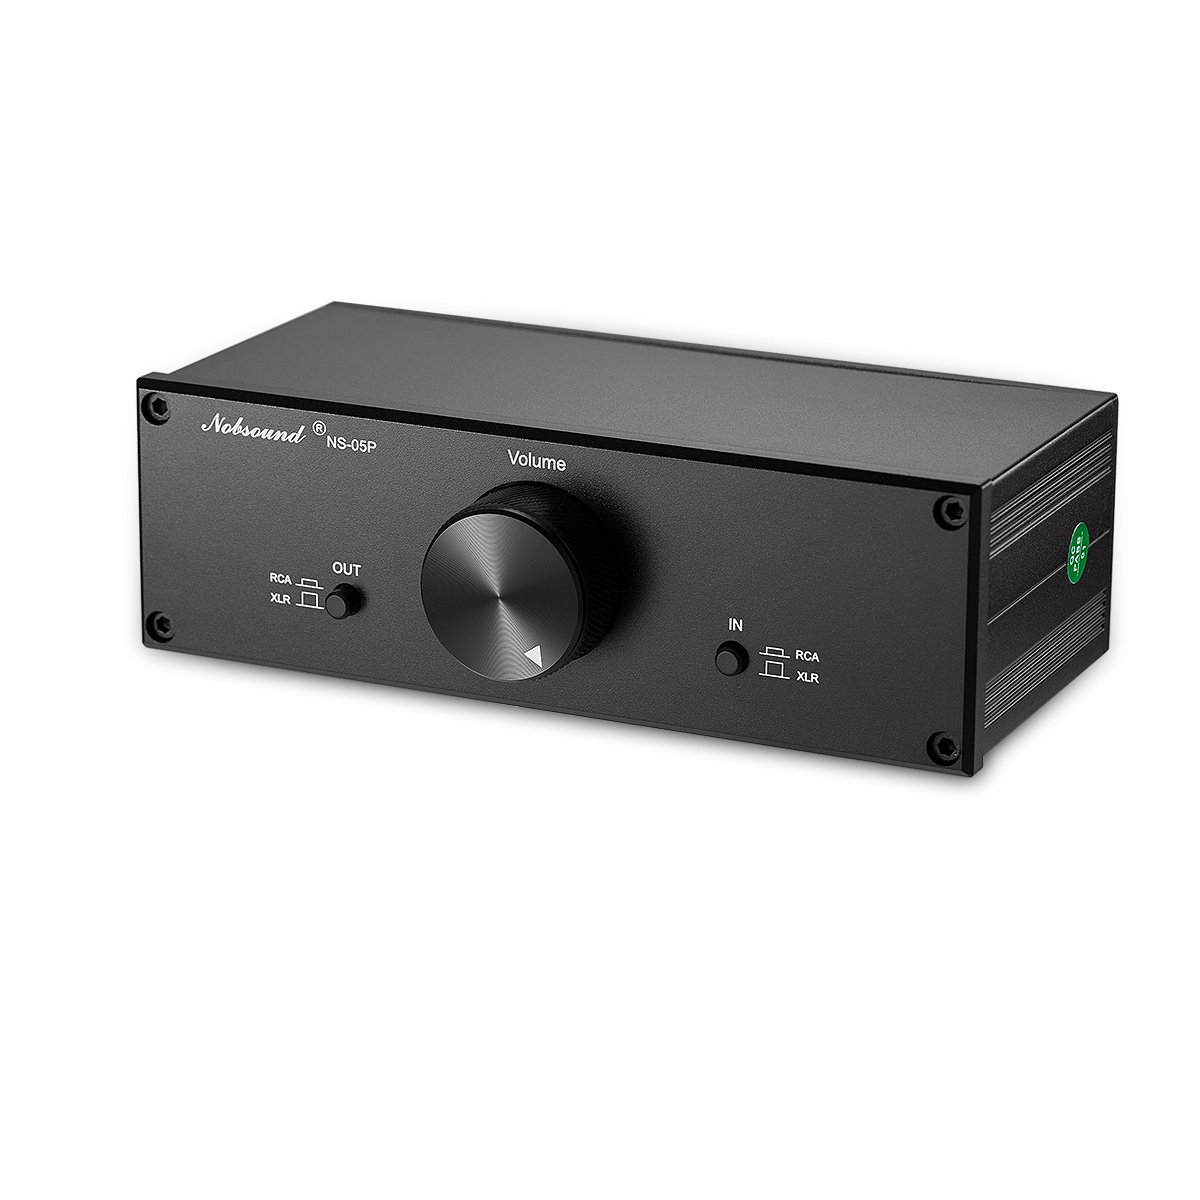 Nobsound Mini Fully-Balanced/Single-Ended Passive Preamp; Hi-Fi Pre-Amplifier; XLR/RCA Volume Controller for Active Monitor Speakers (Black)